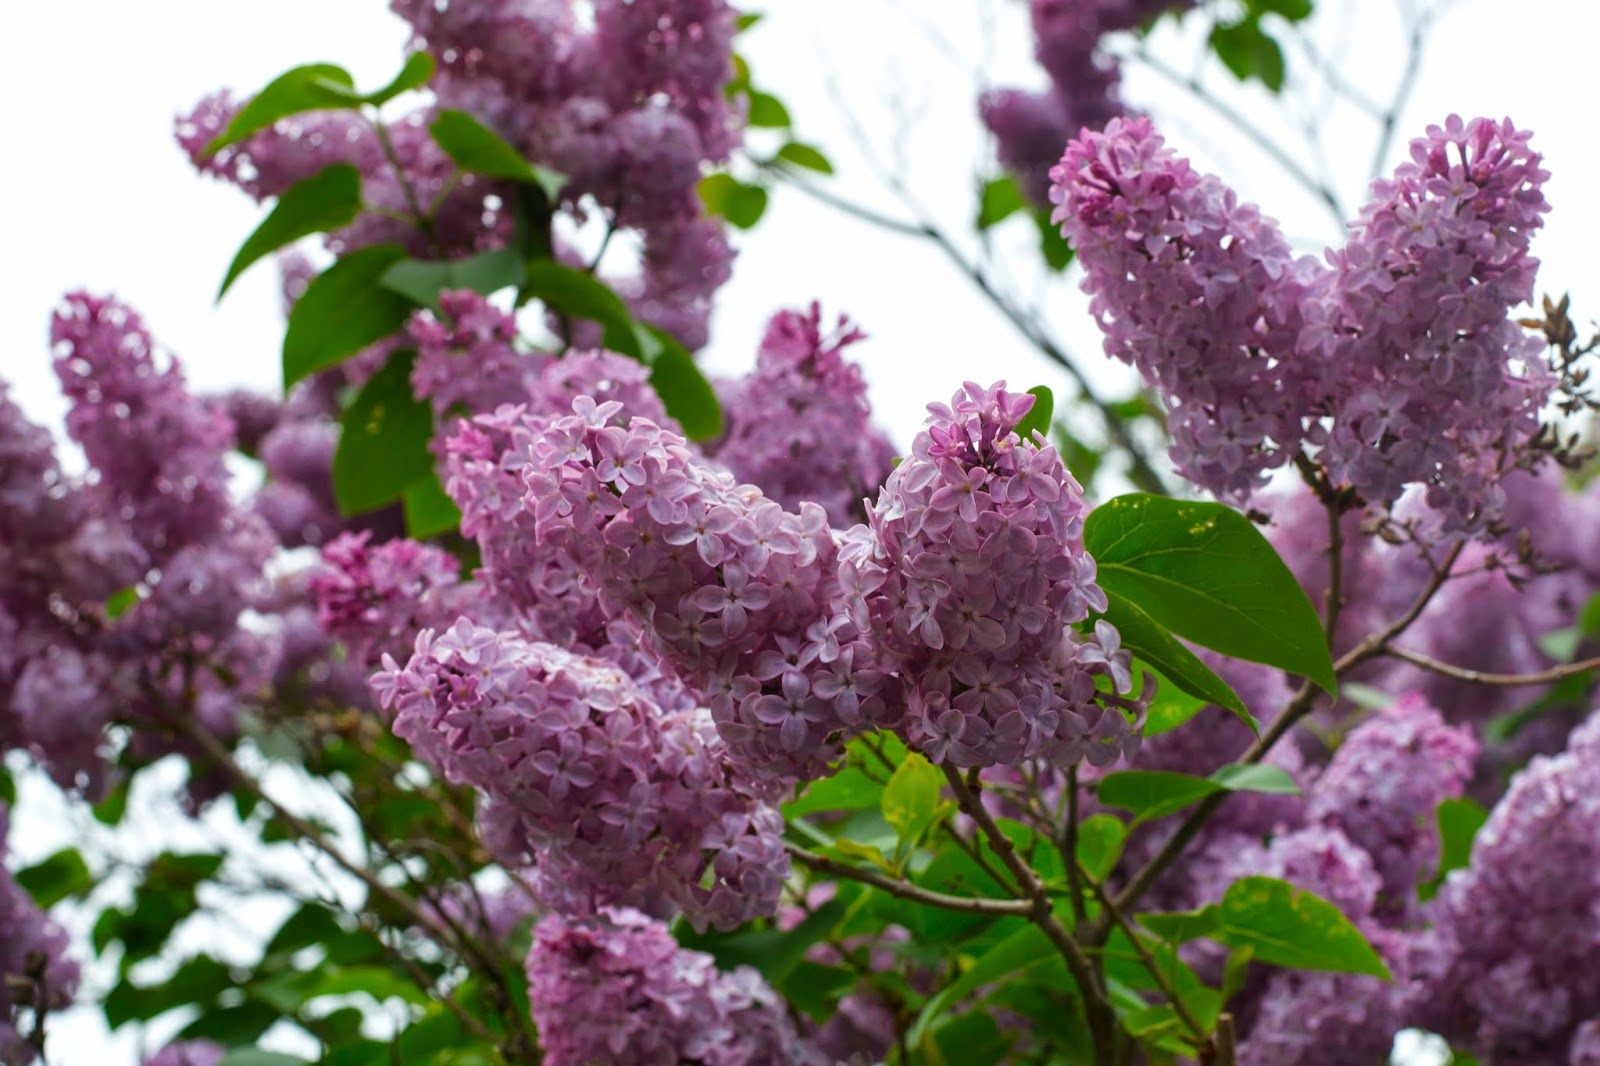 The lilacs are in bloom! A sure sign that spring is heading into summer!